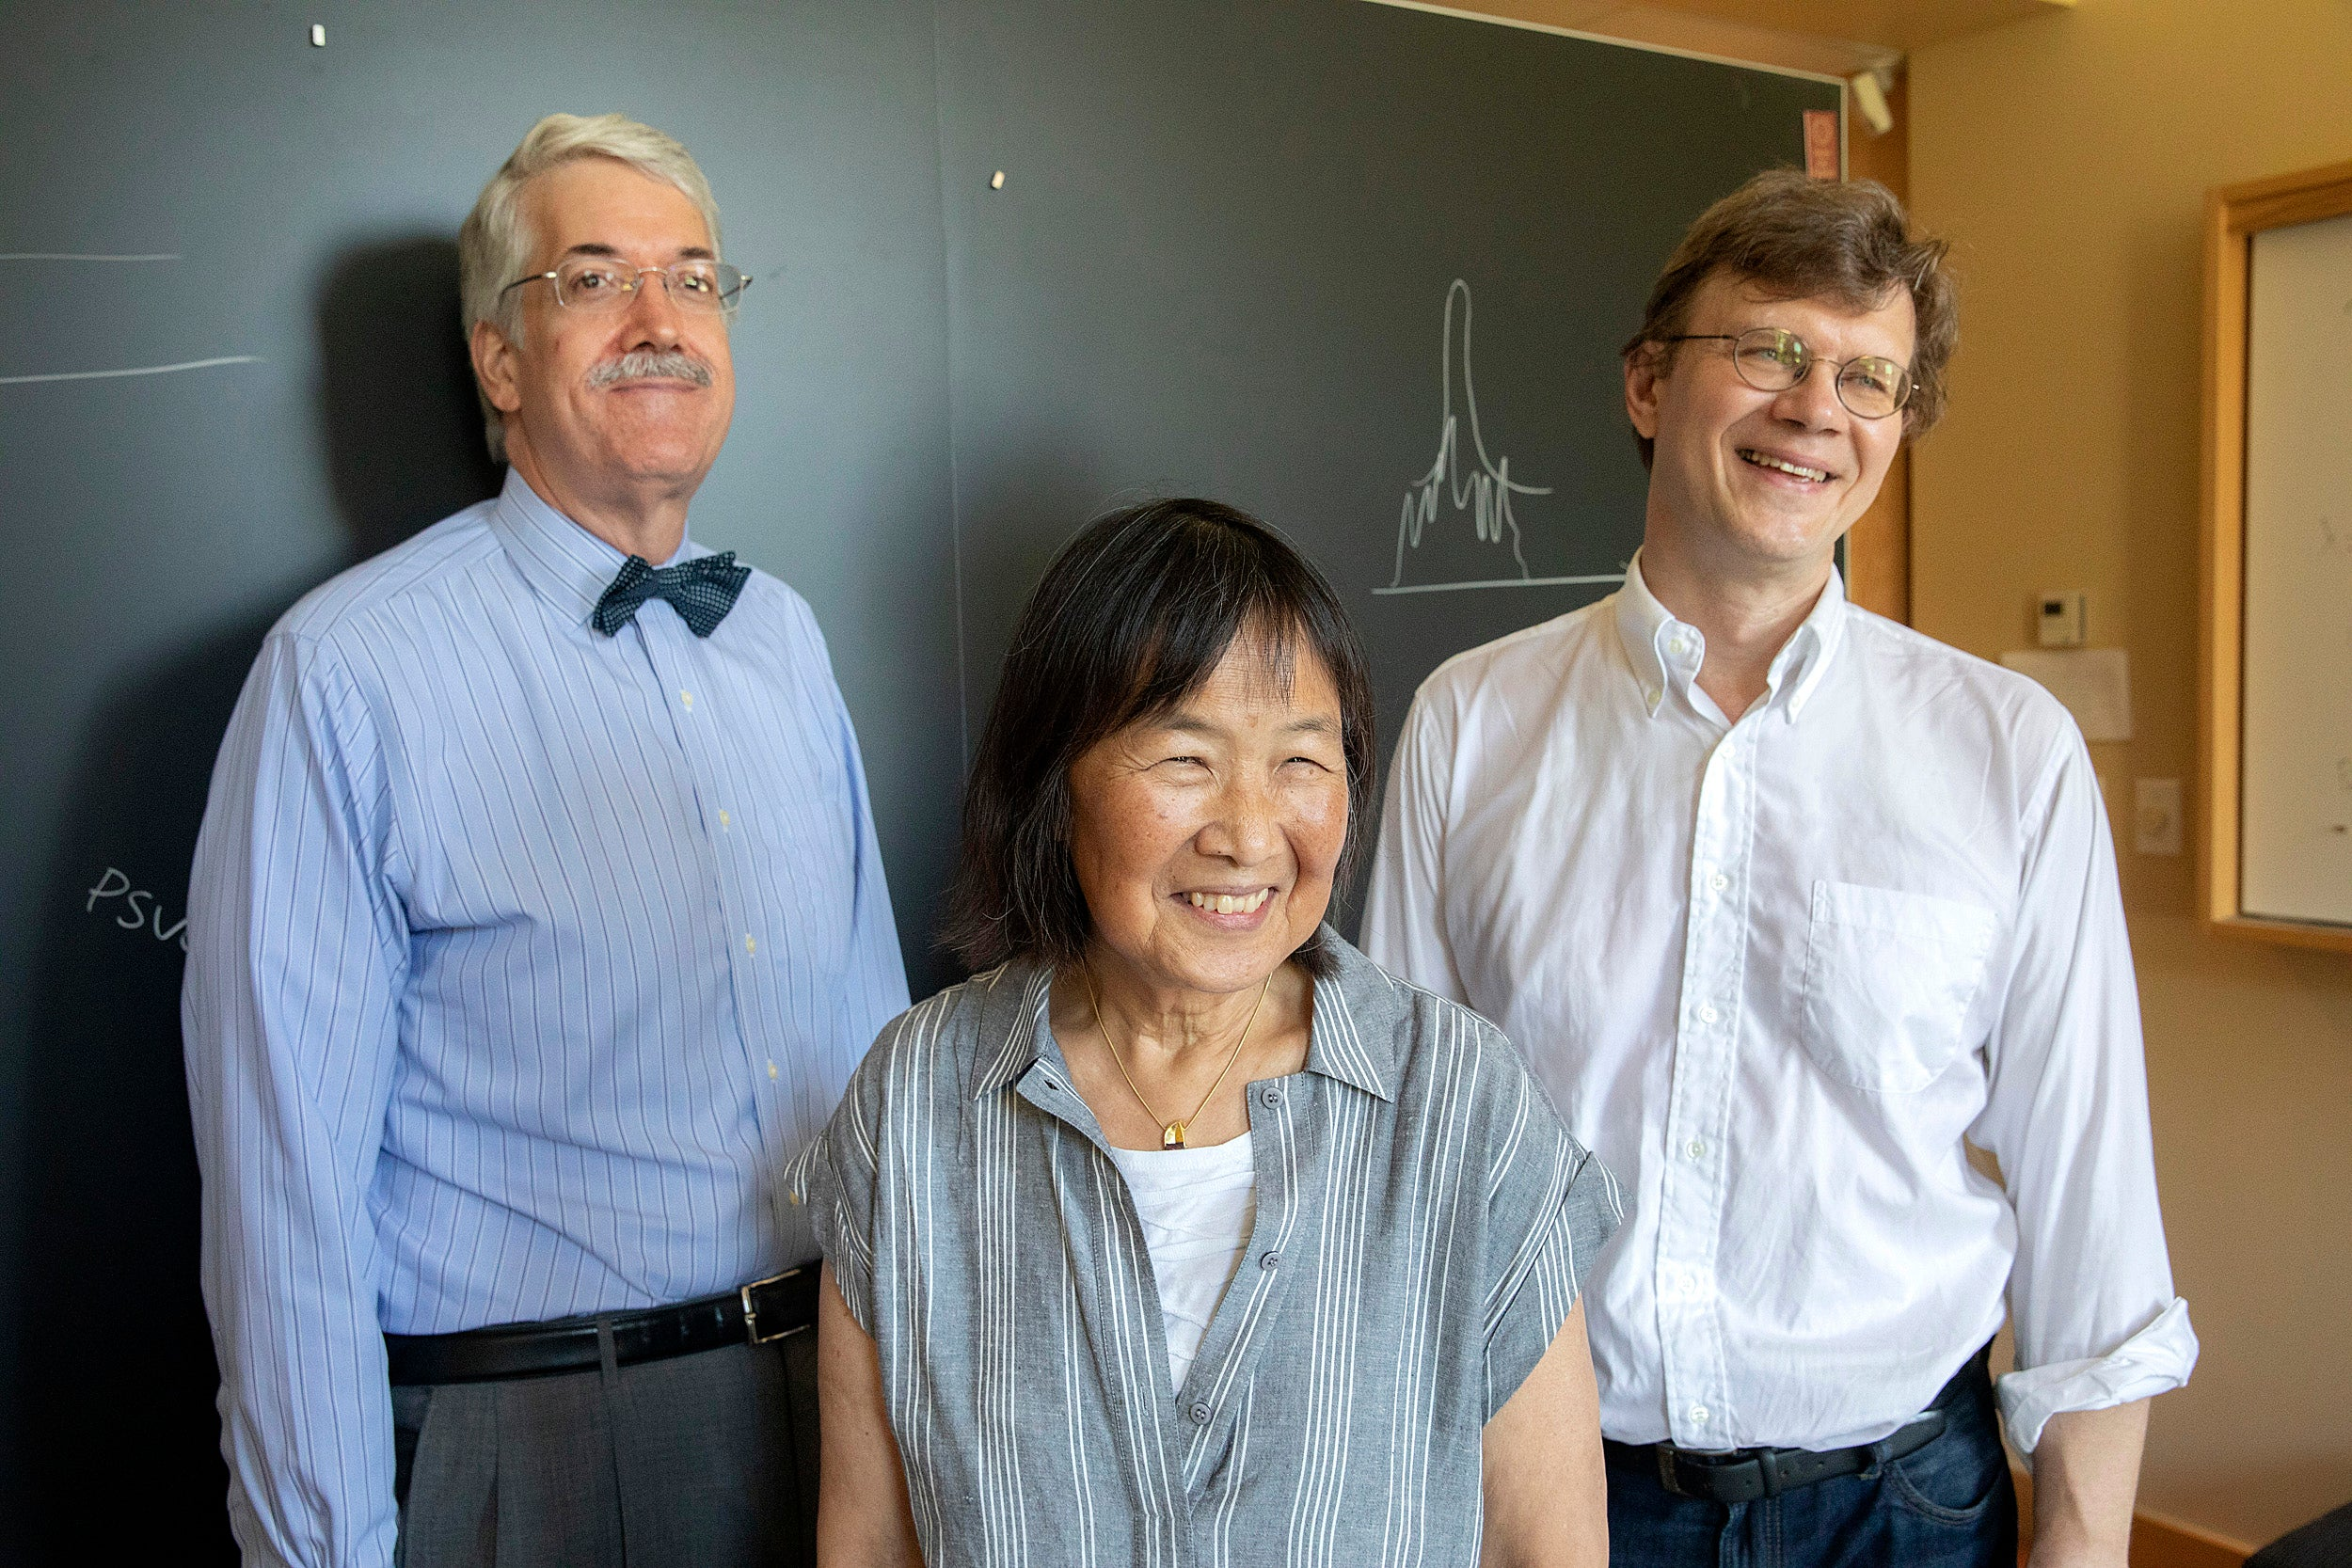 John Doyle, Evelyn Hu, and Mikhail Lukin.